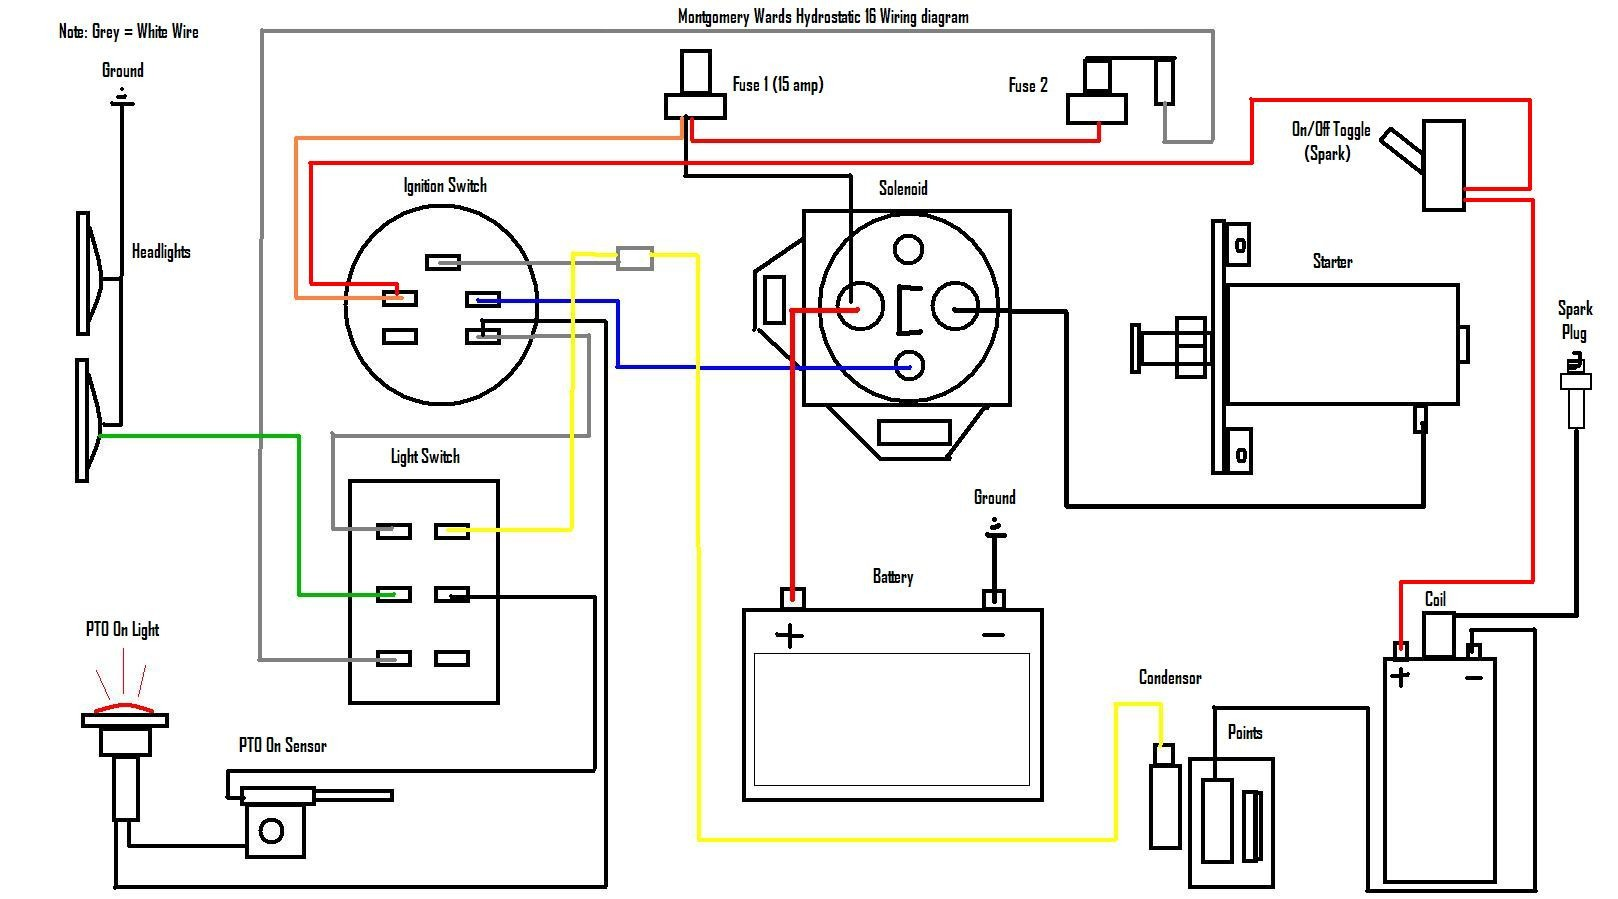 Briggs And Stratton Starter Solenoid Wiring Diagram ...